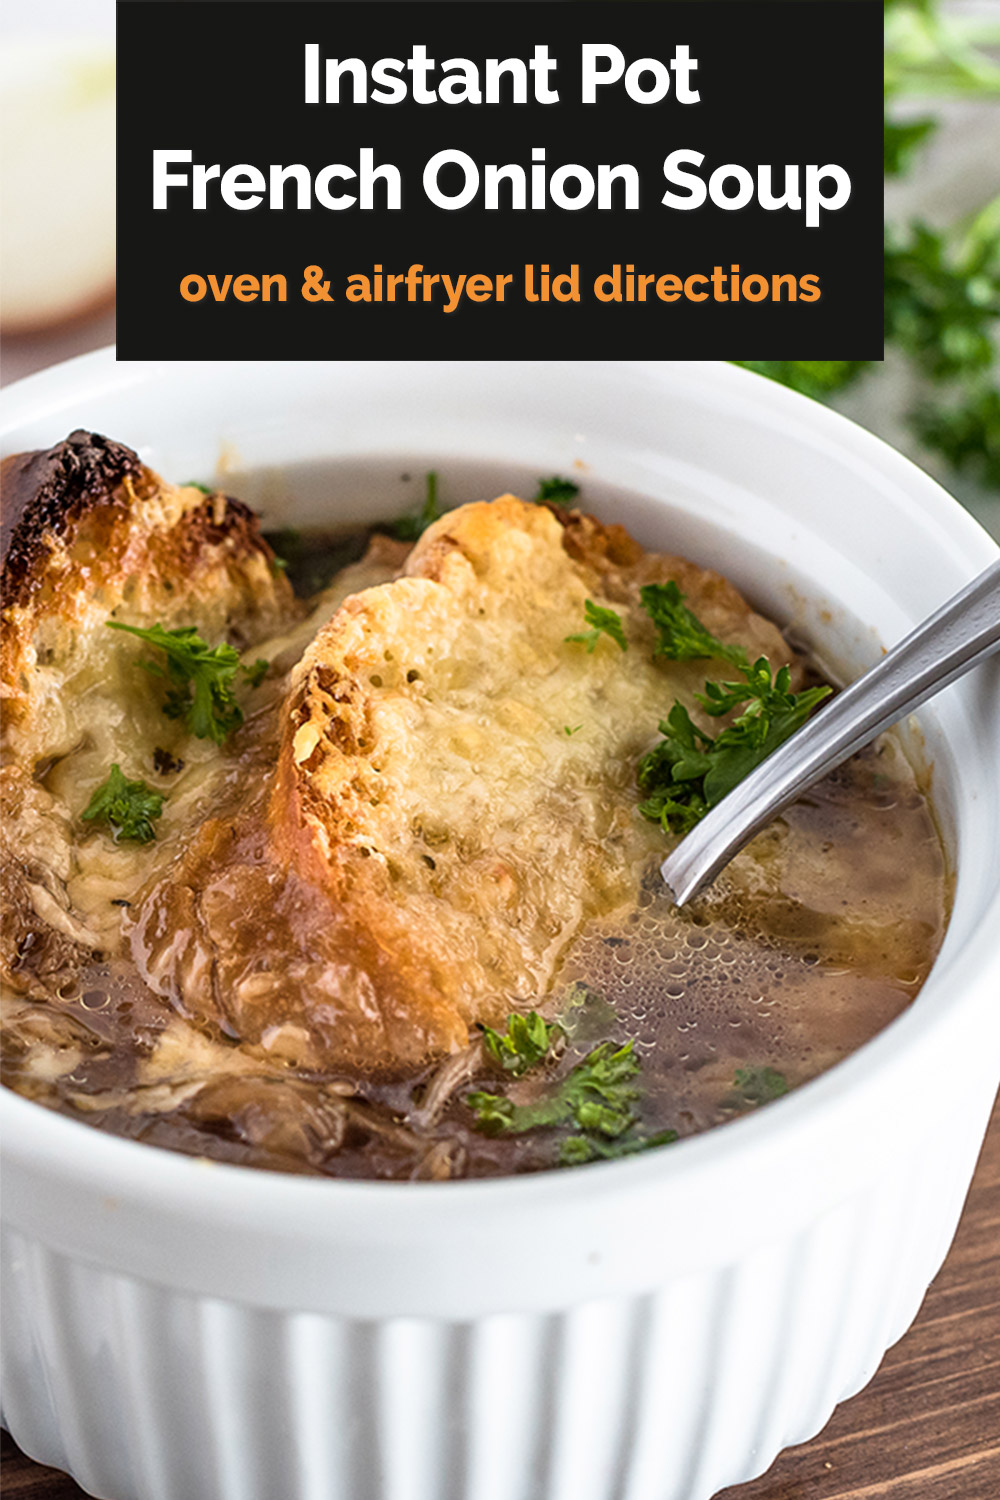 """Pinterest Image that reads """"Instant Pot French Onion Soup: oven and air fryer lid direction"""" in a black text box overlaid on a close-up vertical image of French Onion Soup with crusty browned baguettes and melted cheese in a white ramekin via @PressureCook2da"""